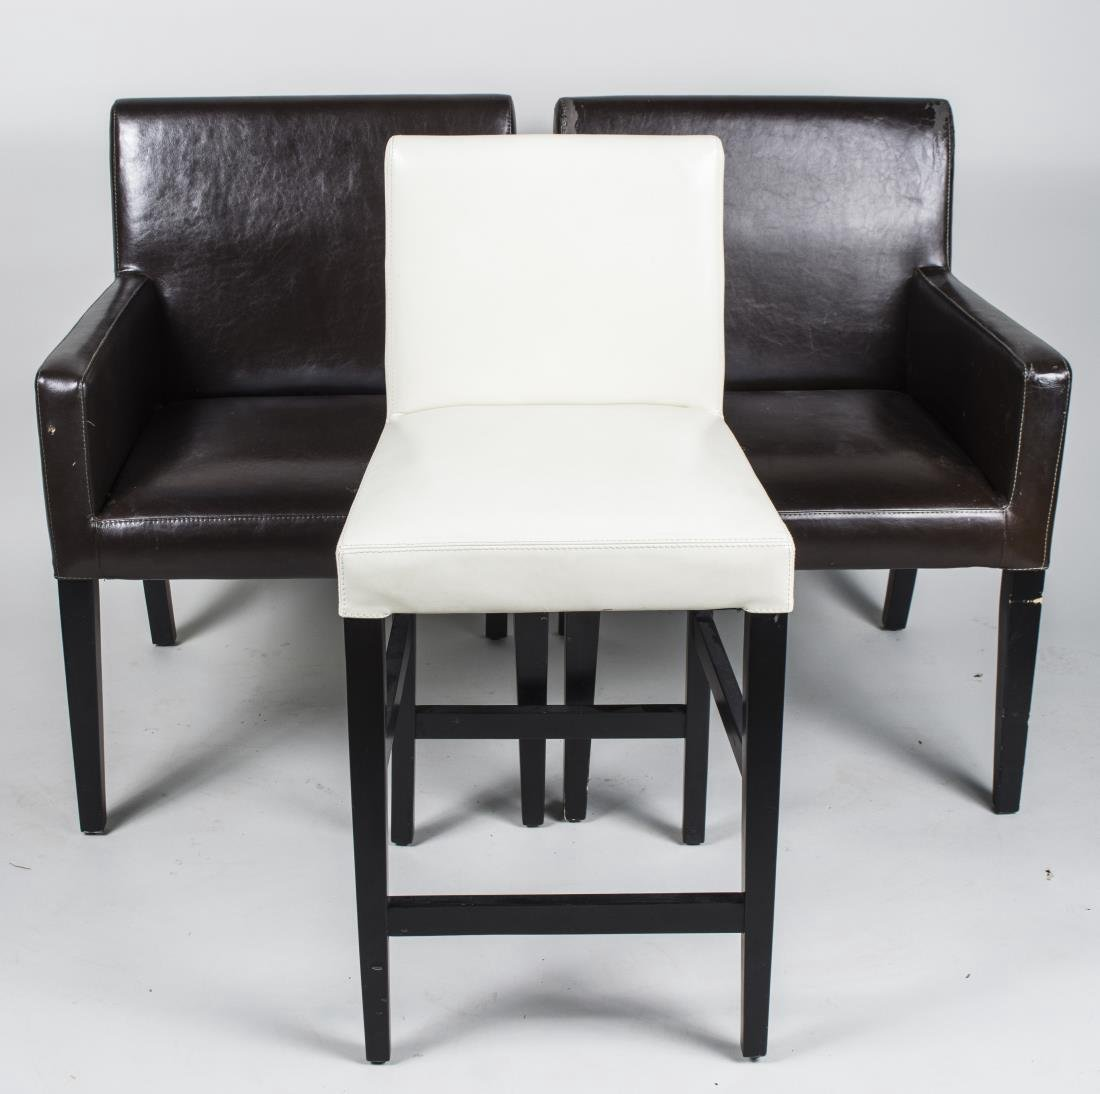 Three Crate & Barrel Leather Chairs